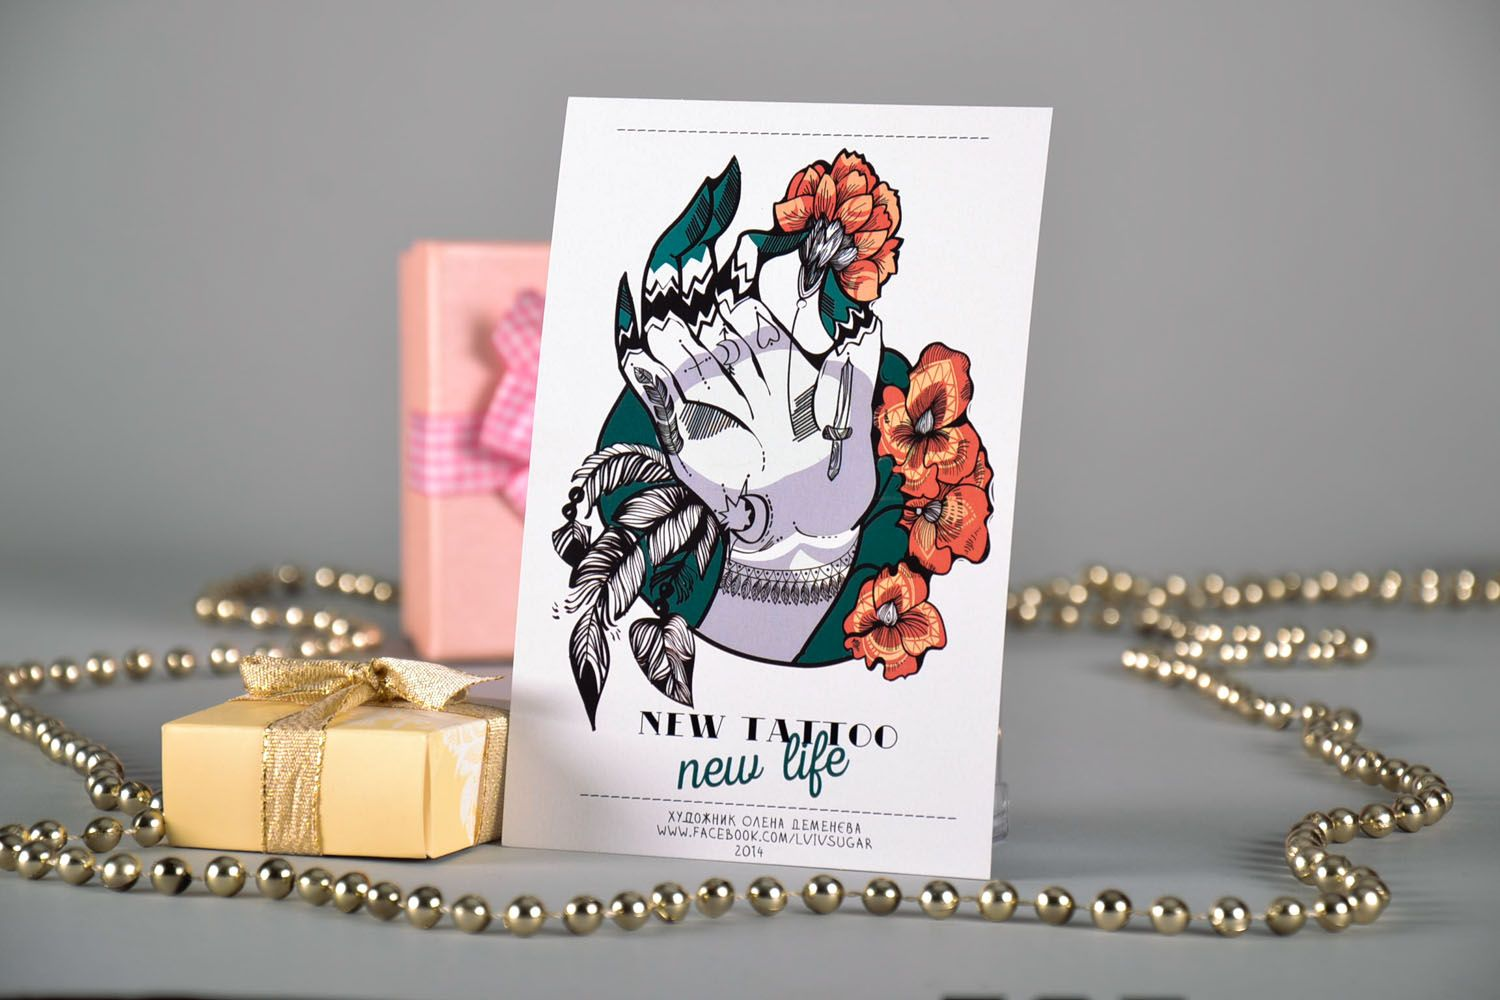 Greeting card with designer drawing New Tattoo photo 1